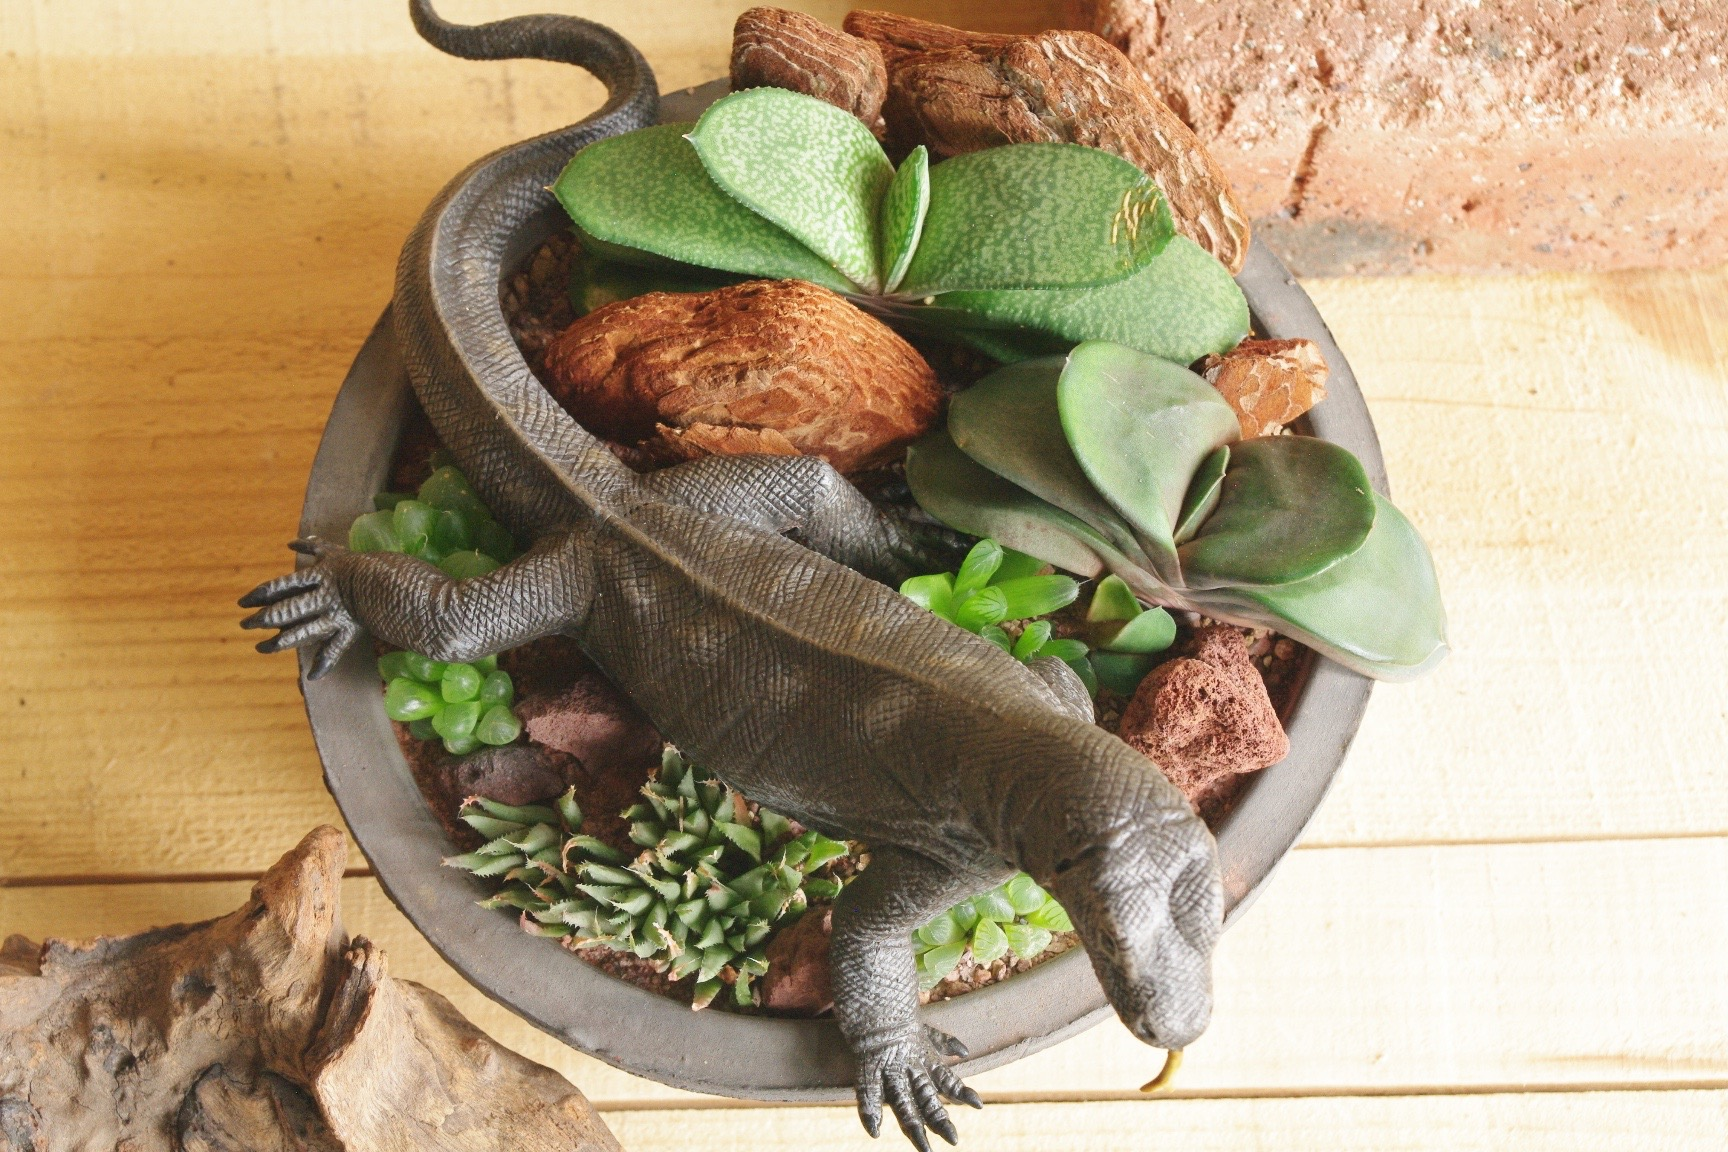 Komodo dragon in African Plants